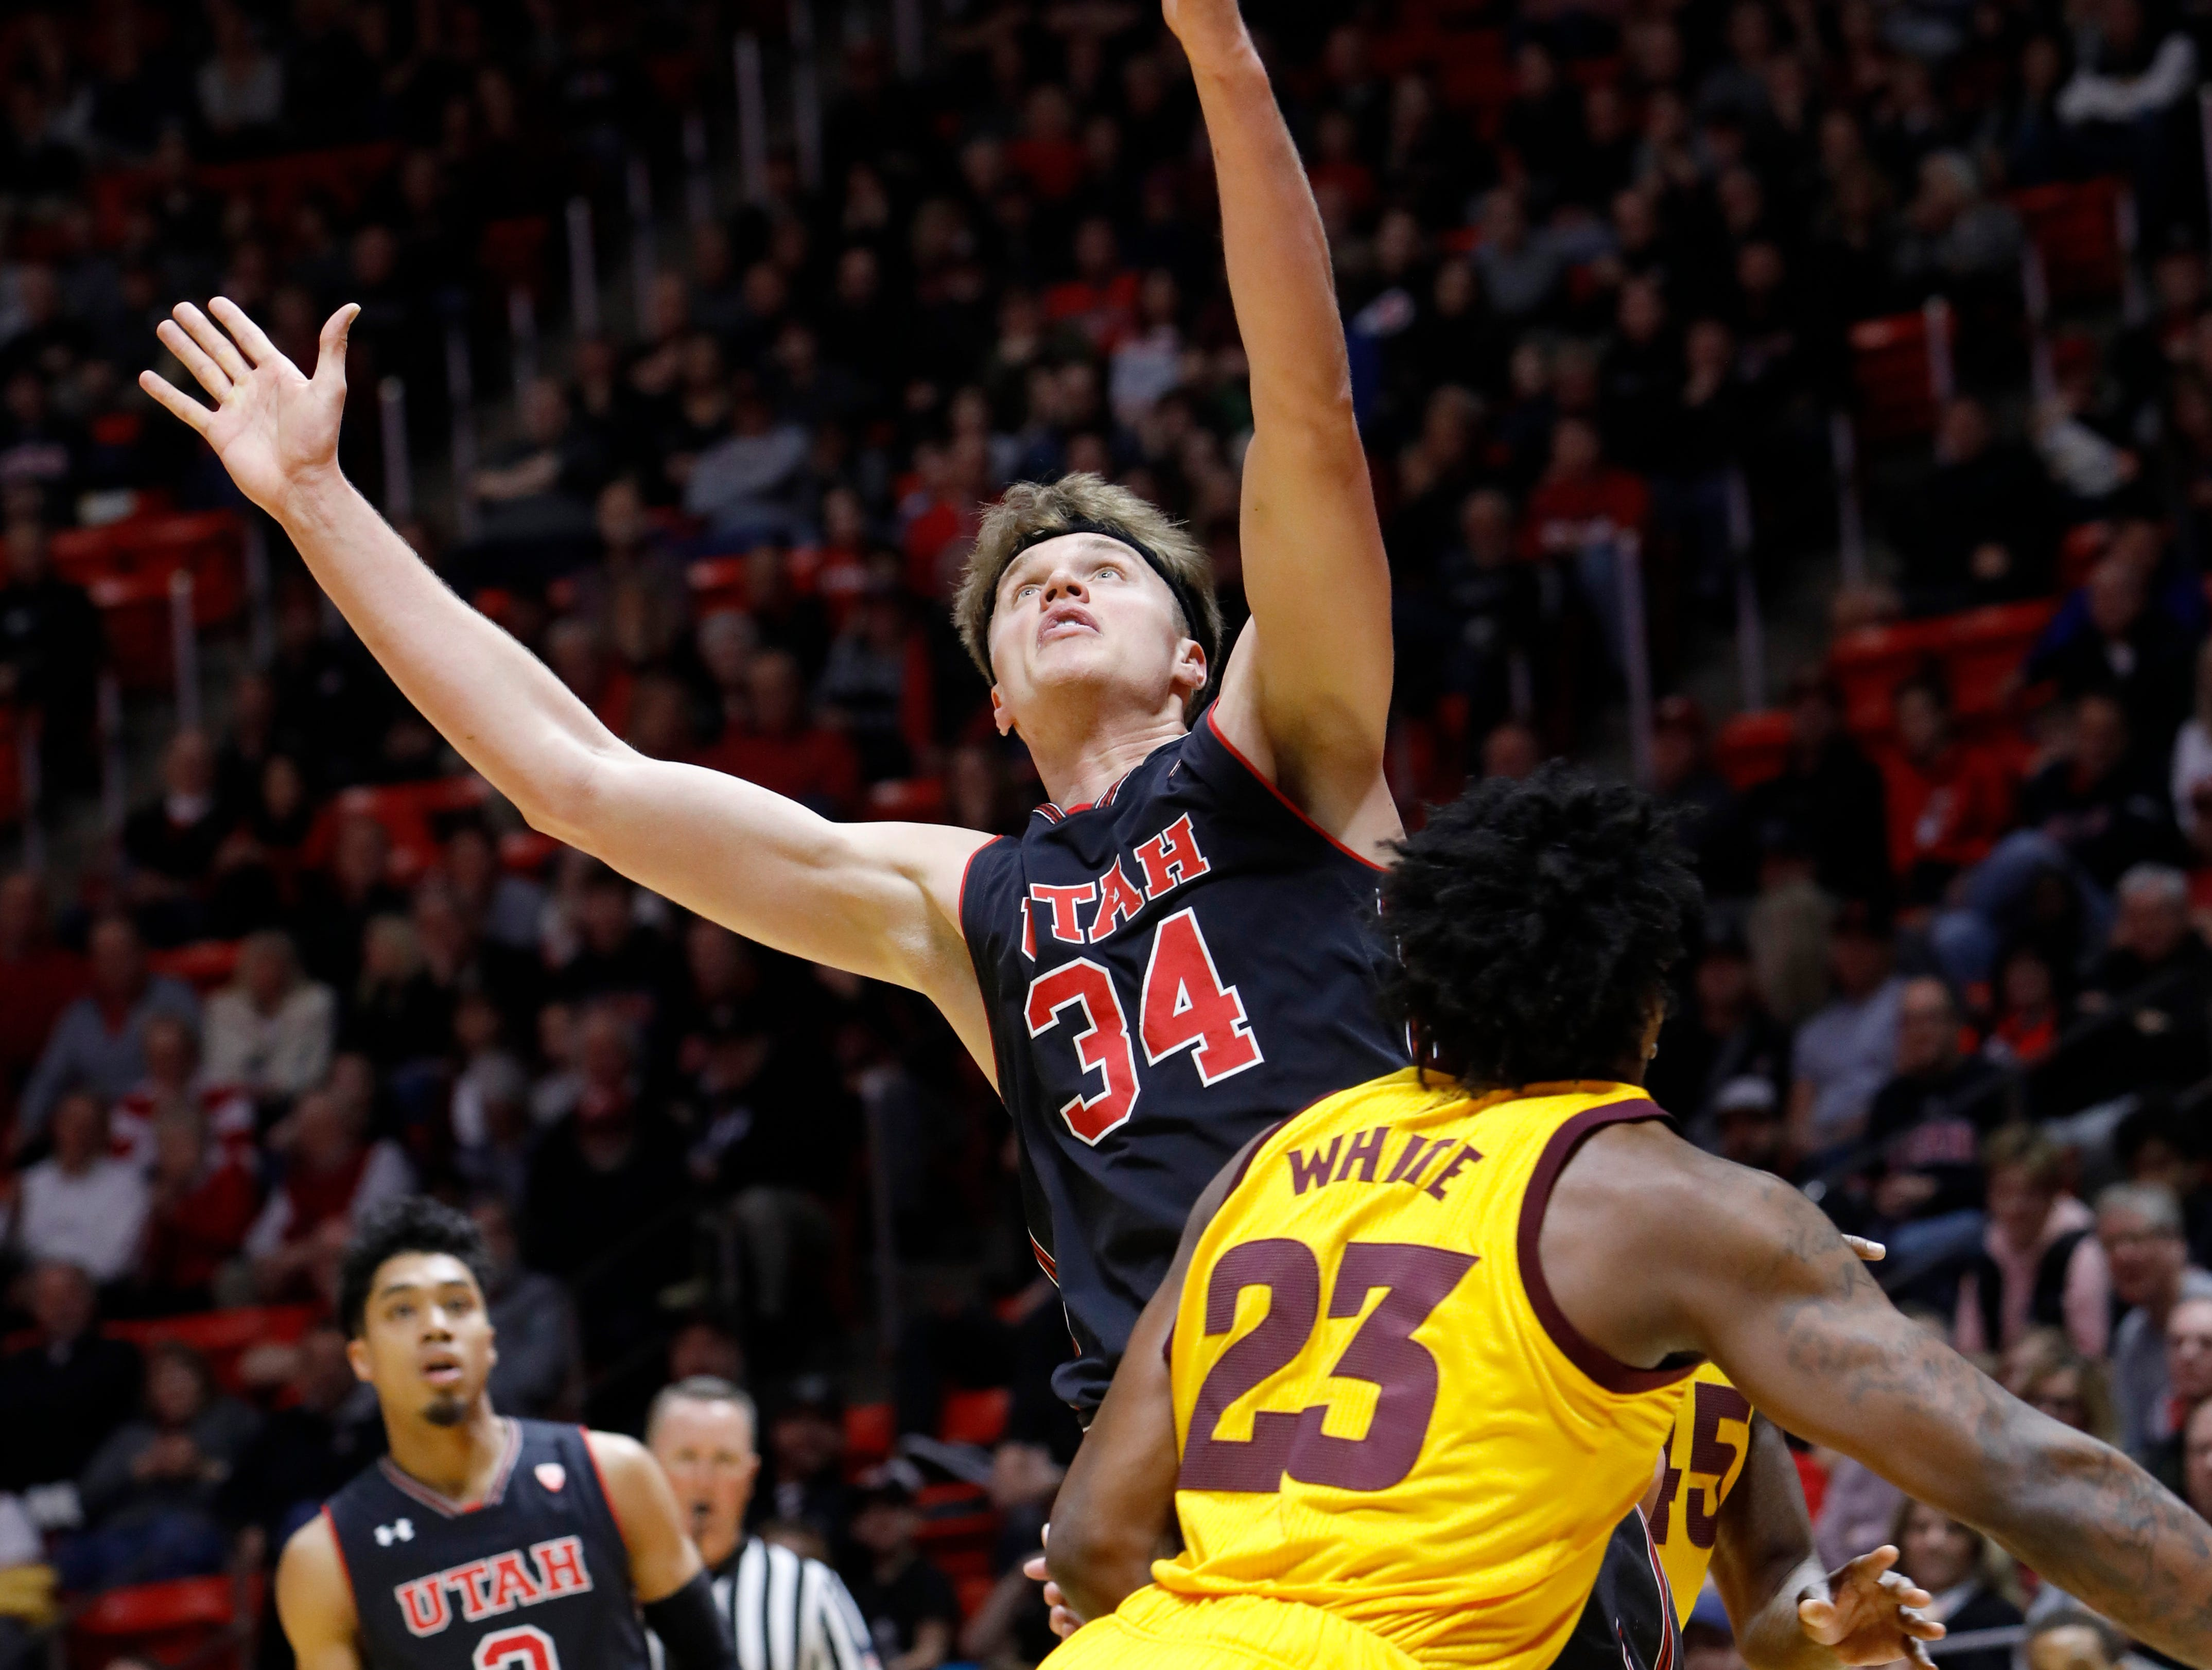 Utah's Jayce Johnson (34) reaches for a rebound next to Arizona State's Romello White (23) during the first half of an NCAA college basketball game Saturday, Feb. 16, 2019, in Salt Lake City. (AP Photo/Kim Raff)